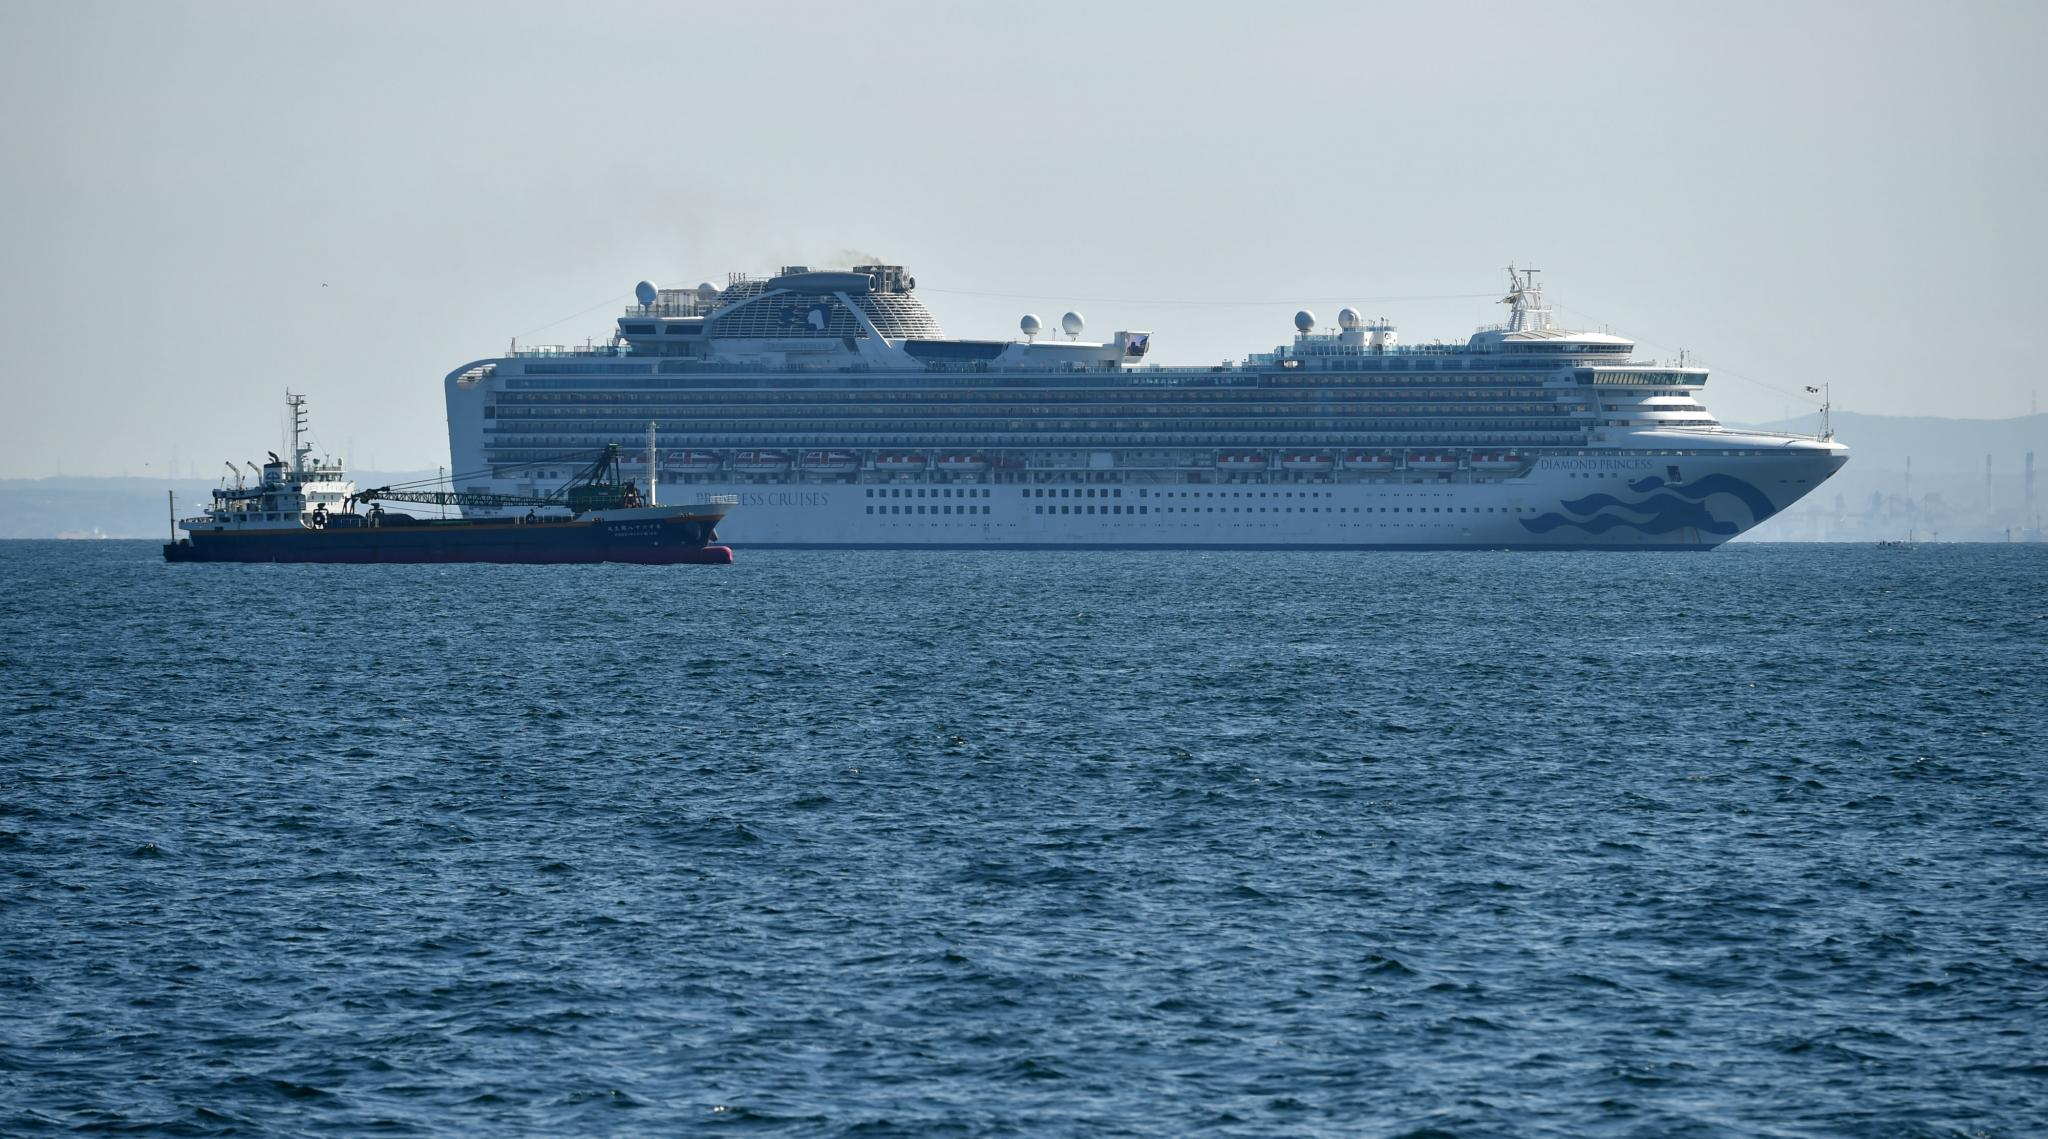 10 new coronavirus cases confirmed aboard Princess Cruises ship quarantined off Yokohama